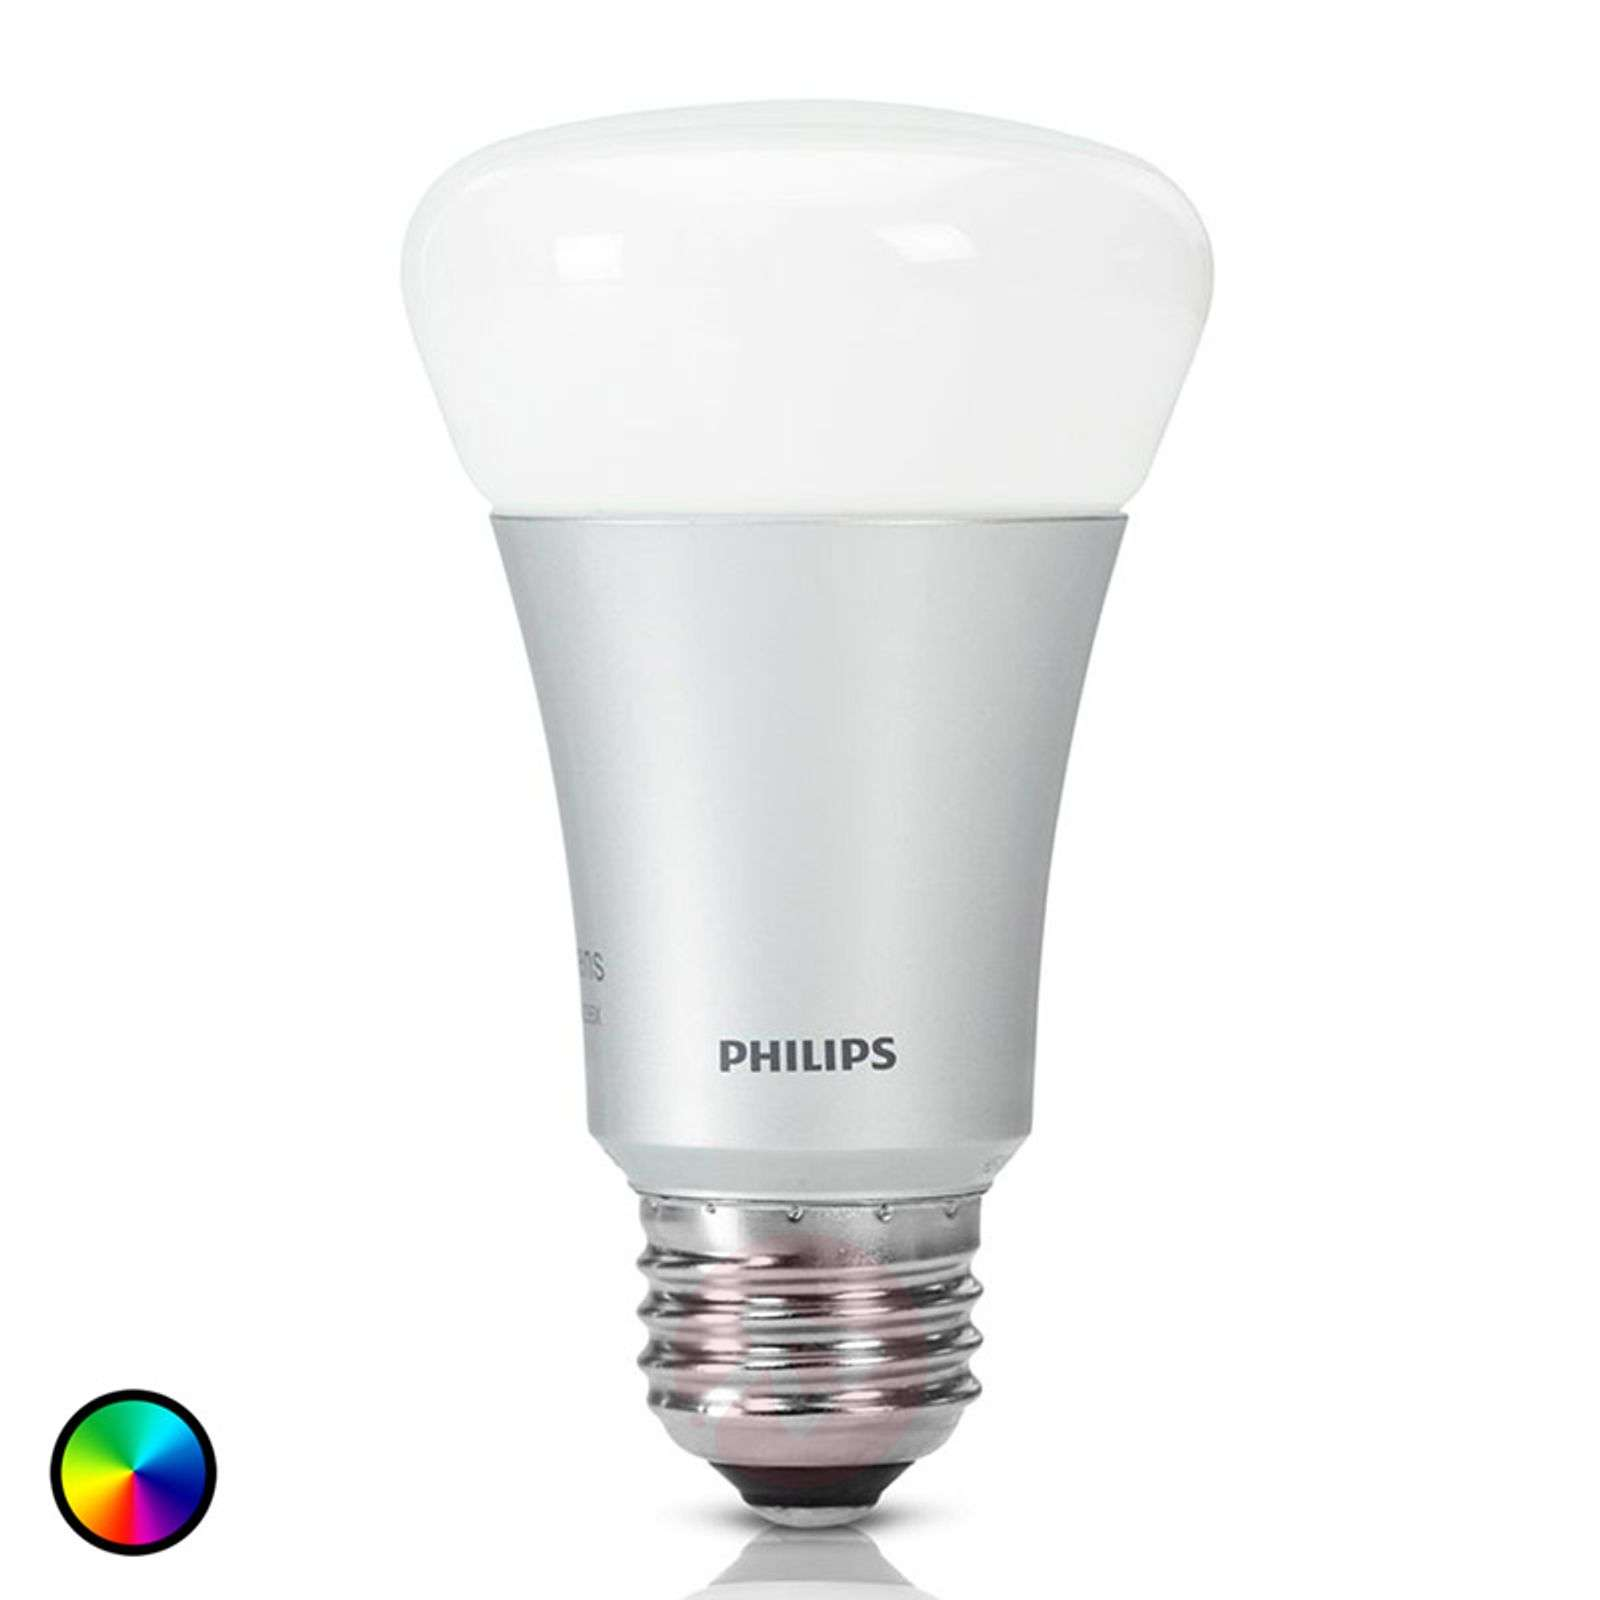 Plafoniera A Led Beign Philips Hue : Philips hue lamp white color ambiance e27 10w lights.co.uk